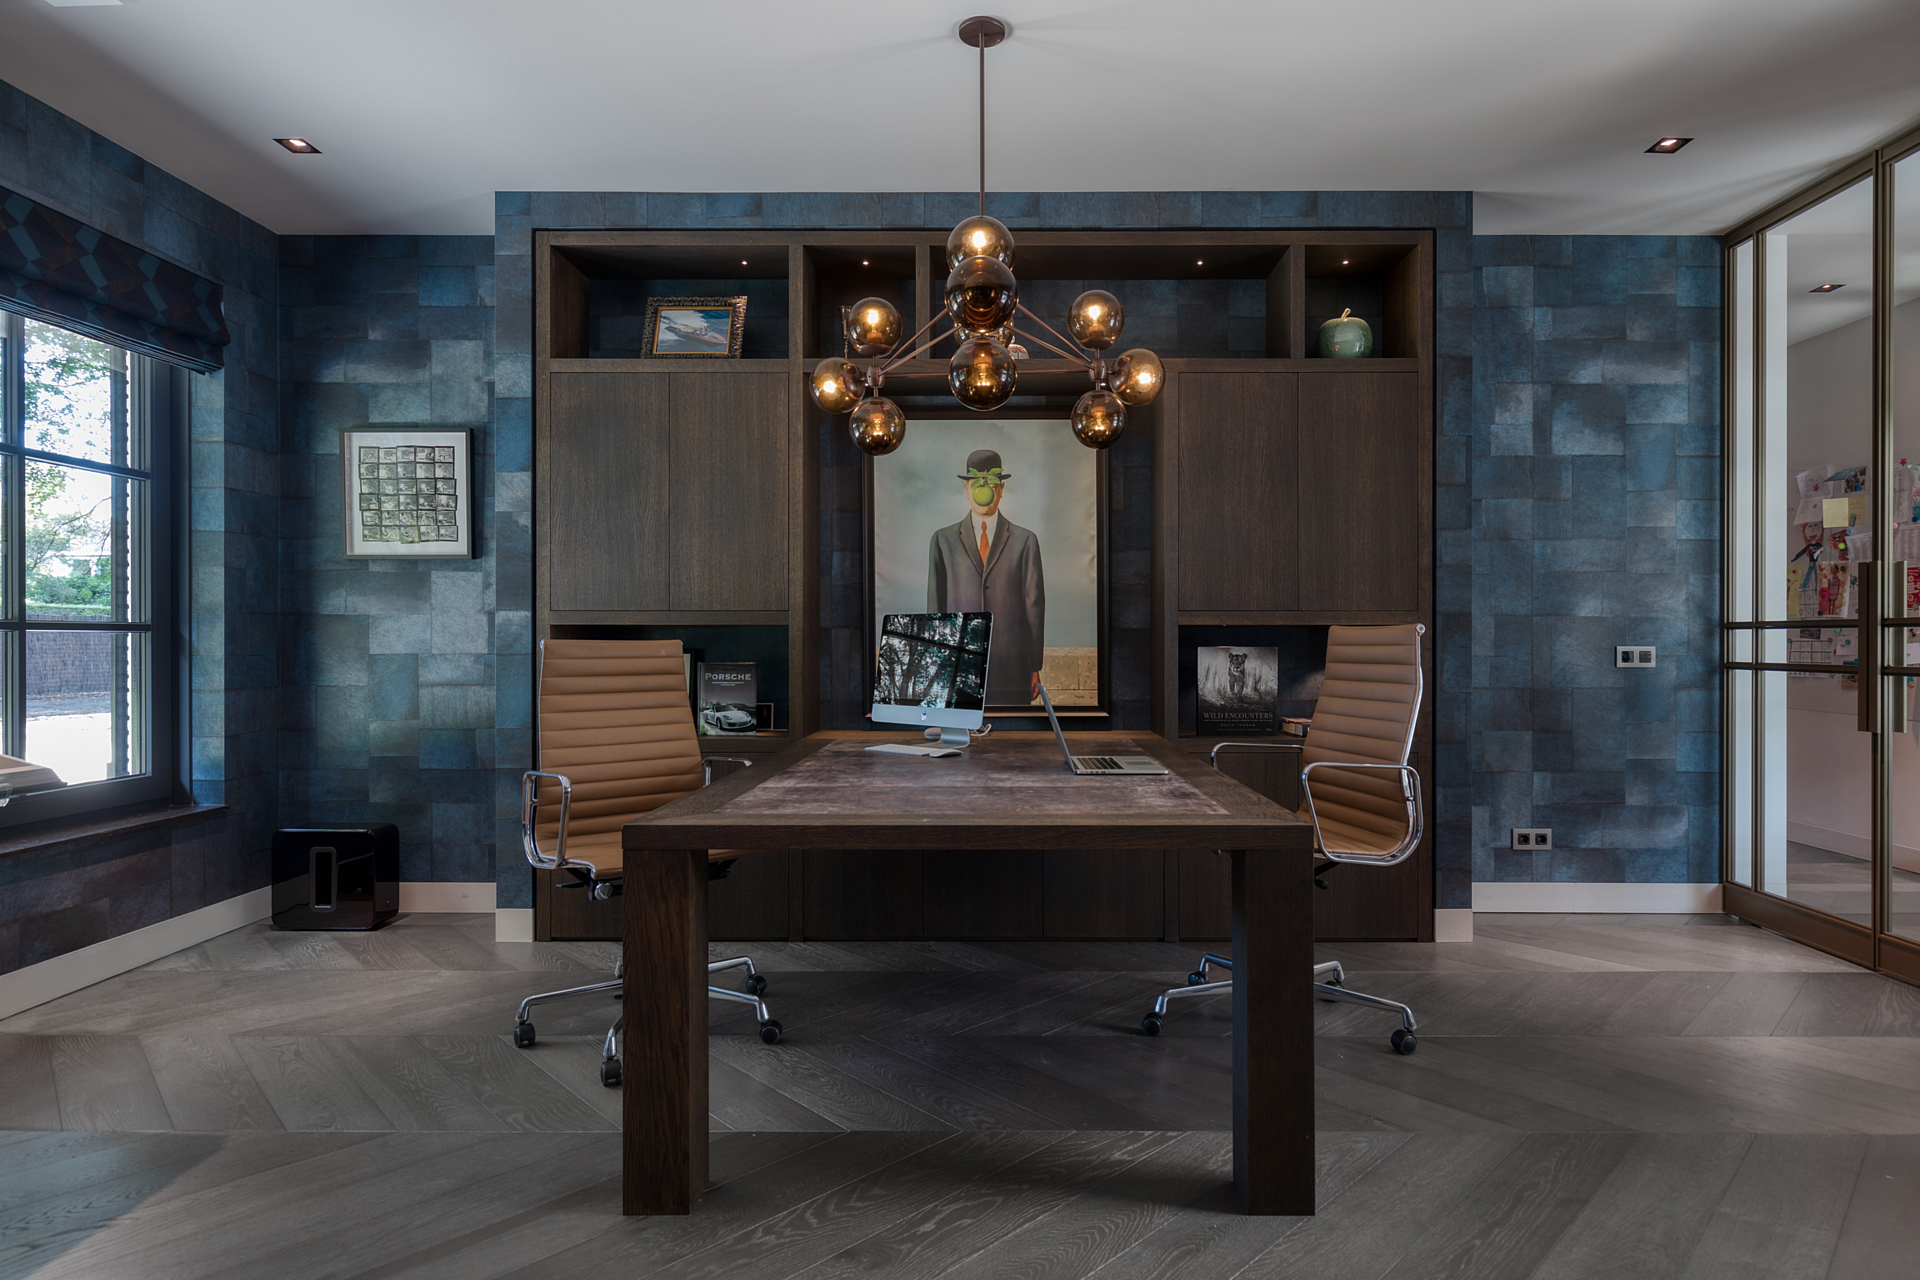 Home office with tantalizing blue wallpaper, a retro fish bulbed chandalier hangs over the desk.